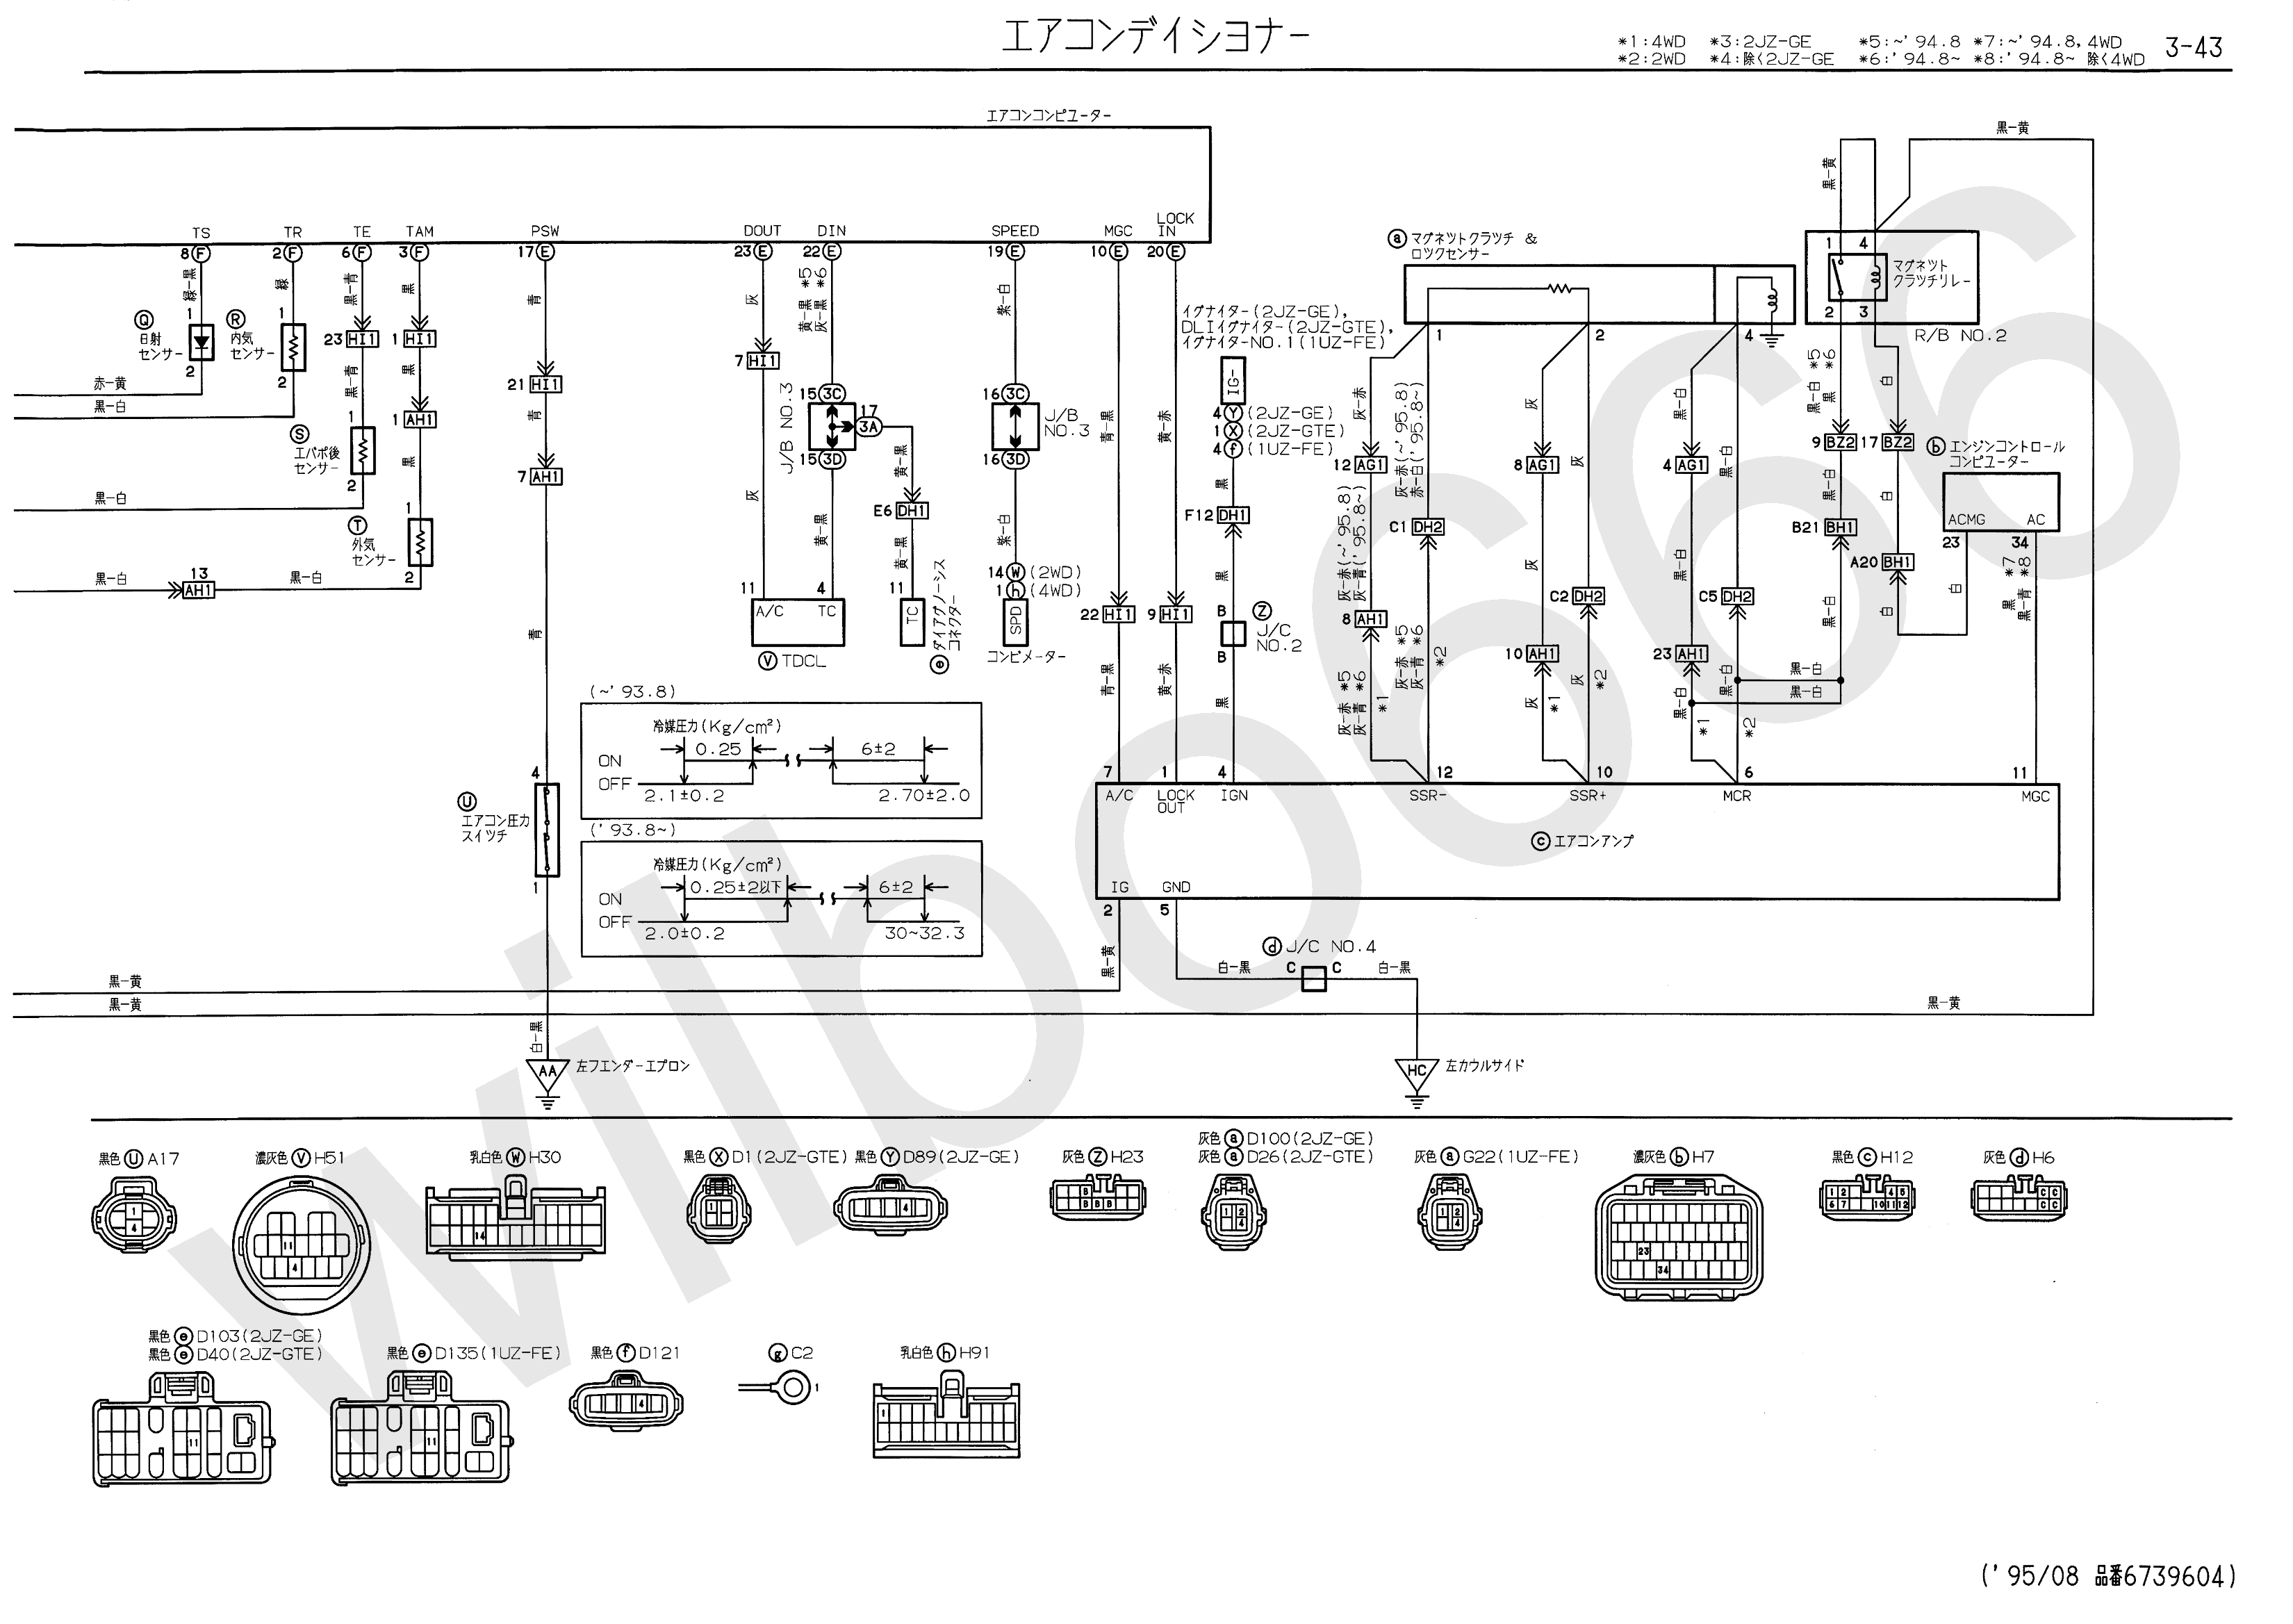 lexus alternator wiring diagram lexus image wiring 1uz wiring diagram 1uz image wiring diagram on lexus alternator wiring diagram